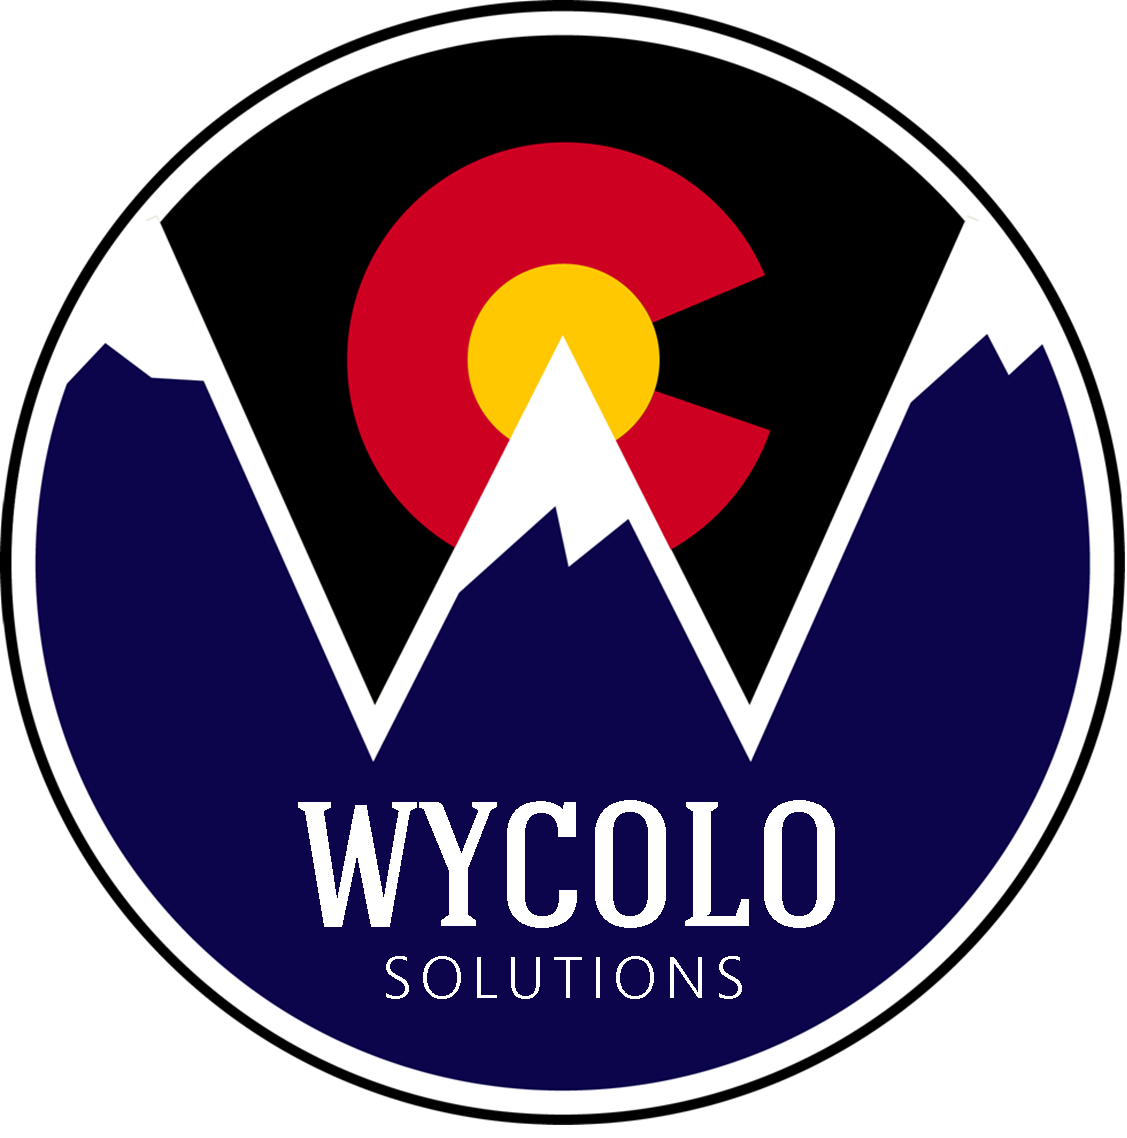 WyColo Solutions